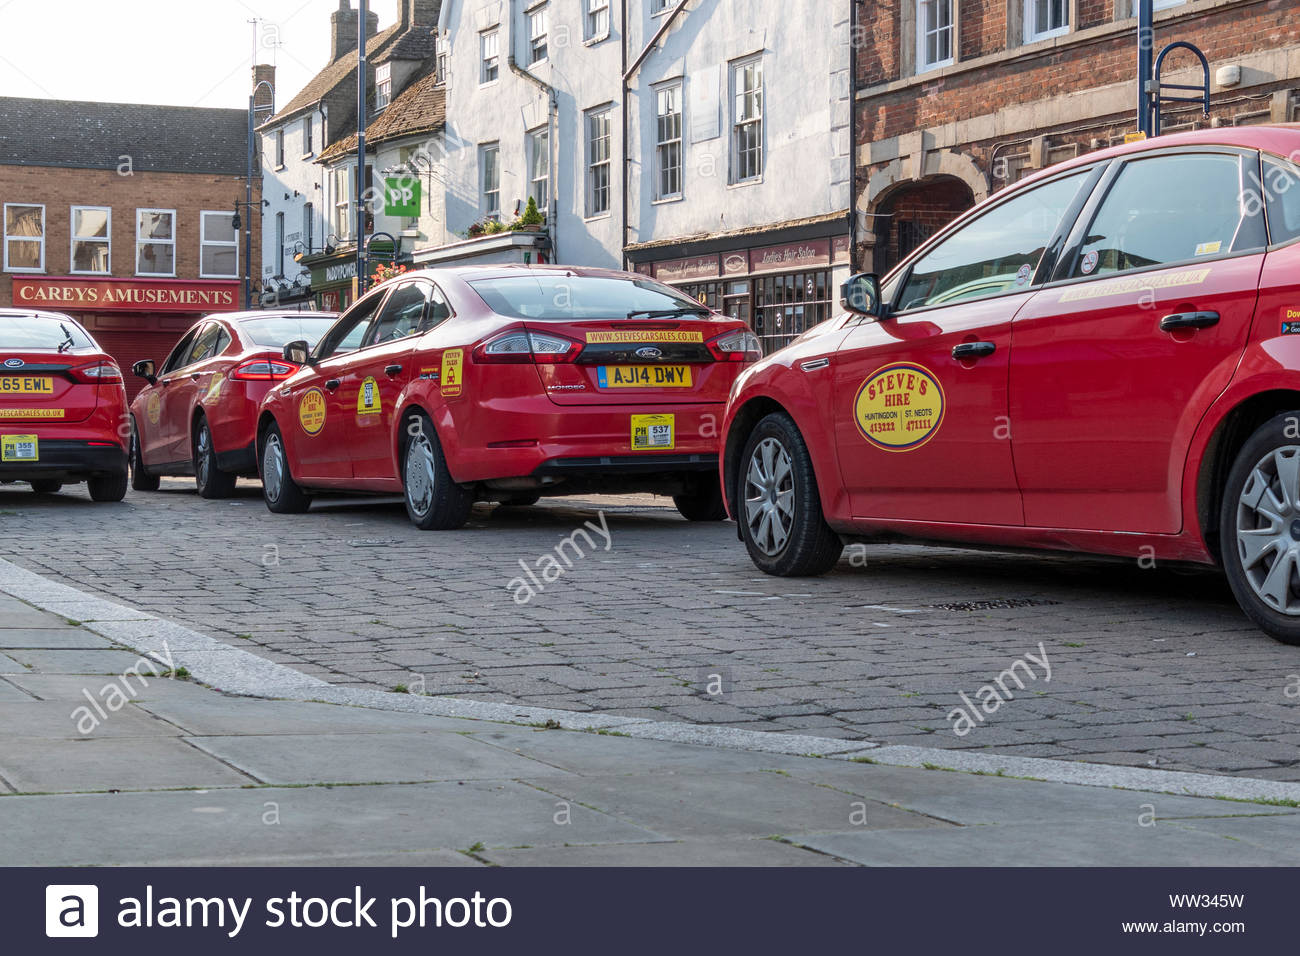 Steve's Mini Cab / taxi hire vehicles in a row at St Neots in Cambridgeshire, England, UK Stock Photo